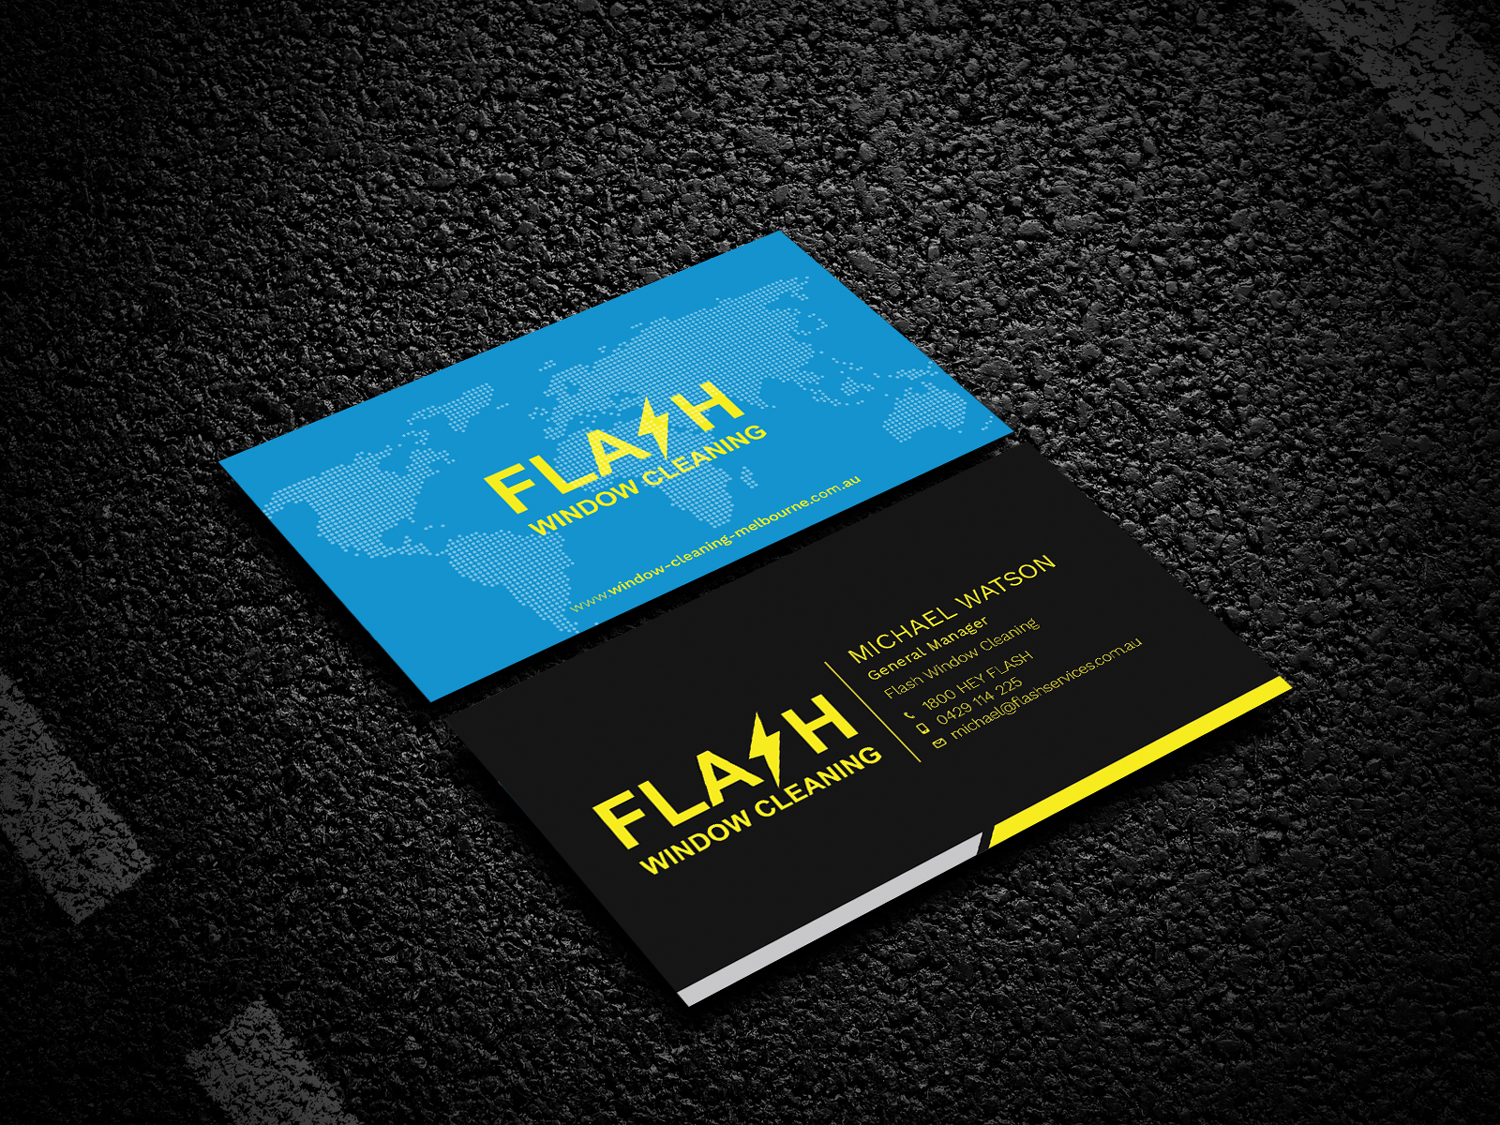 Serious modern window cleaning business card design for a company business card design by fxpro for this project design 18769360 reheart Image collections